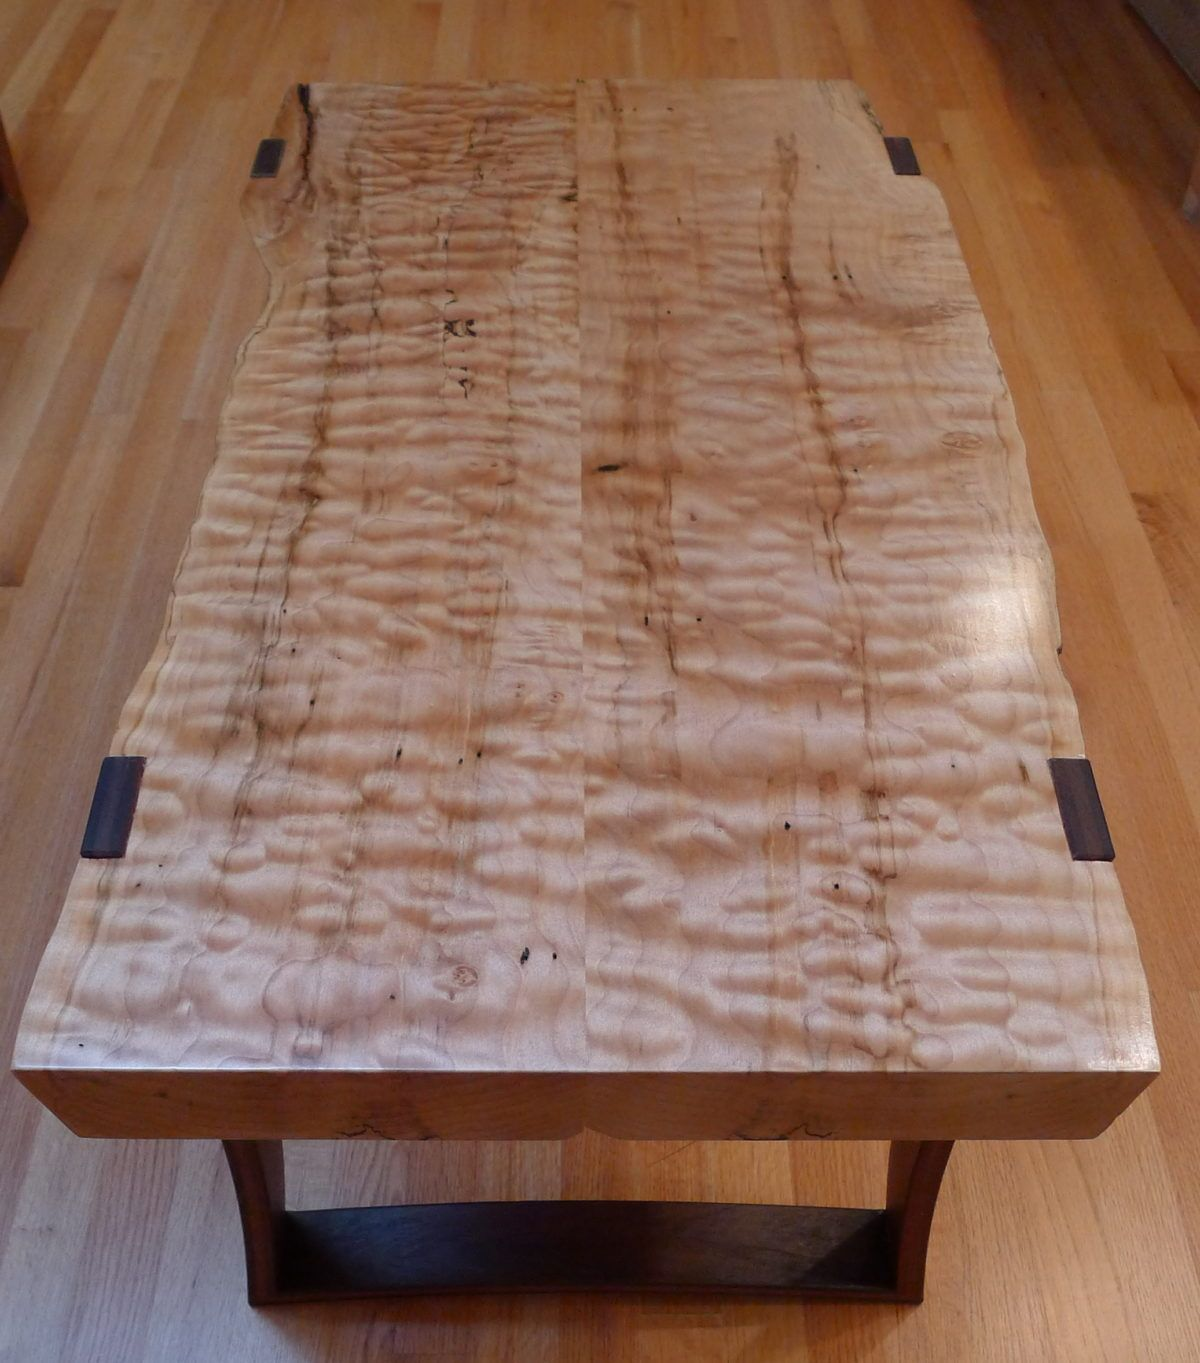 This Is A Curly Maple And Ipe Coffee Table That I Just Finished